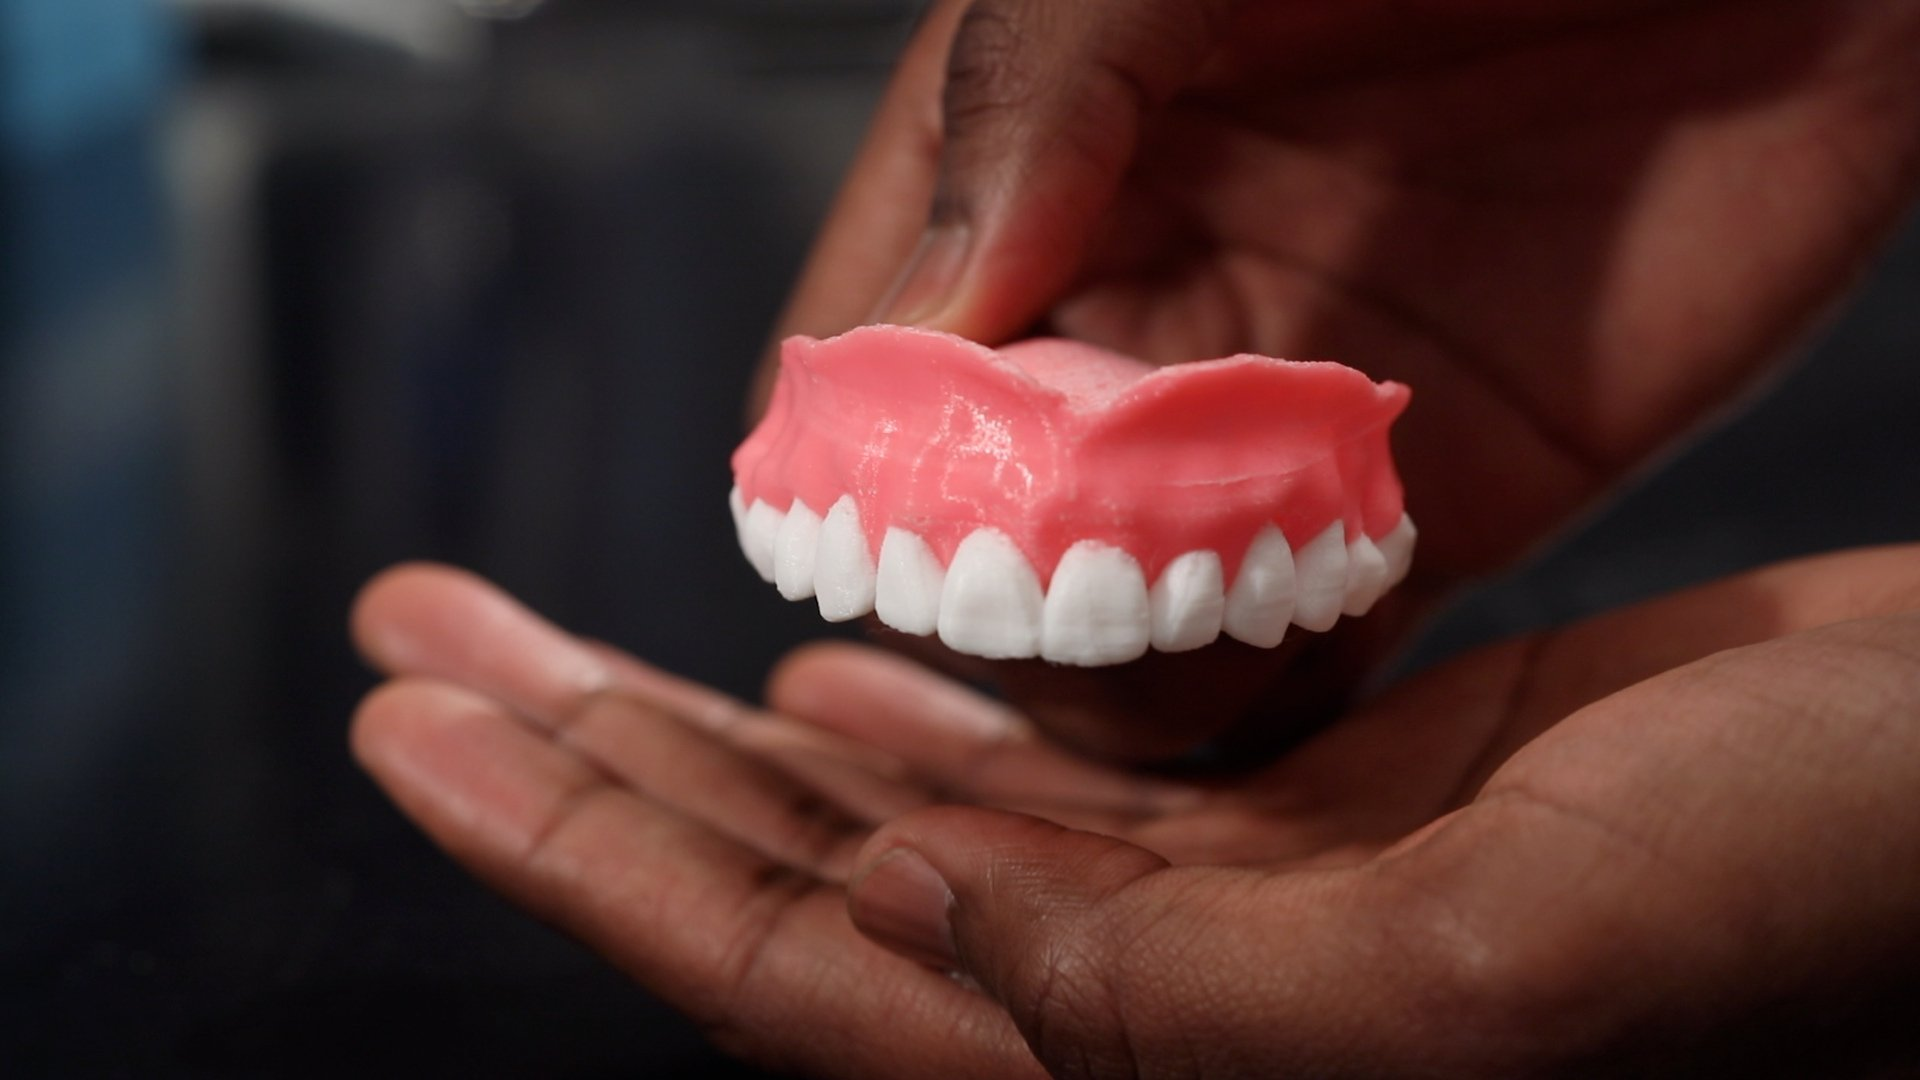 3D Printed Dentures Filled with Drugs to Fight Infection | All3DP